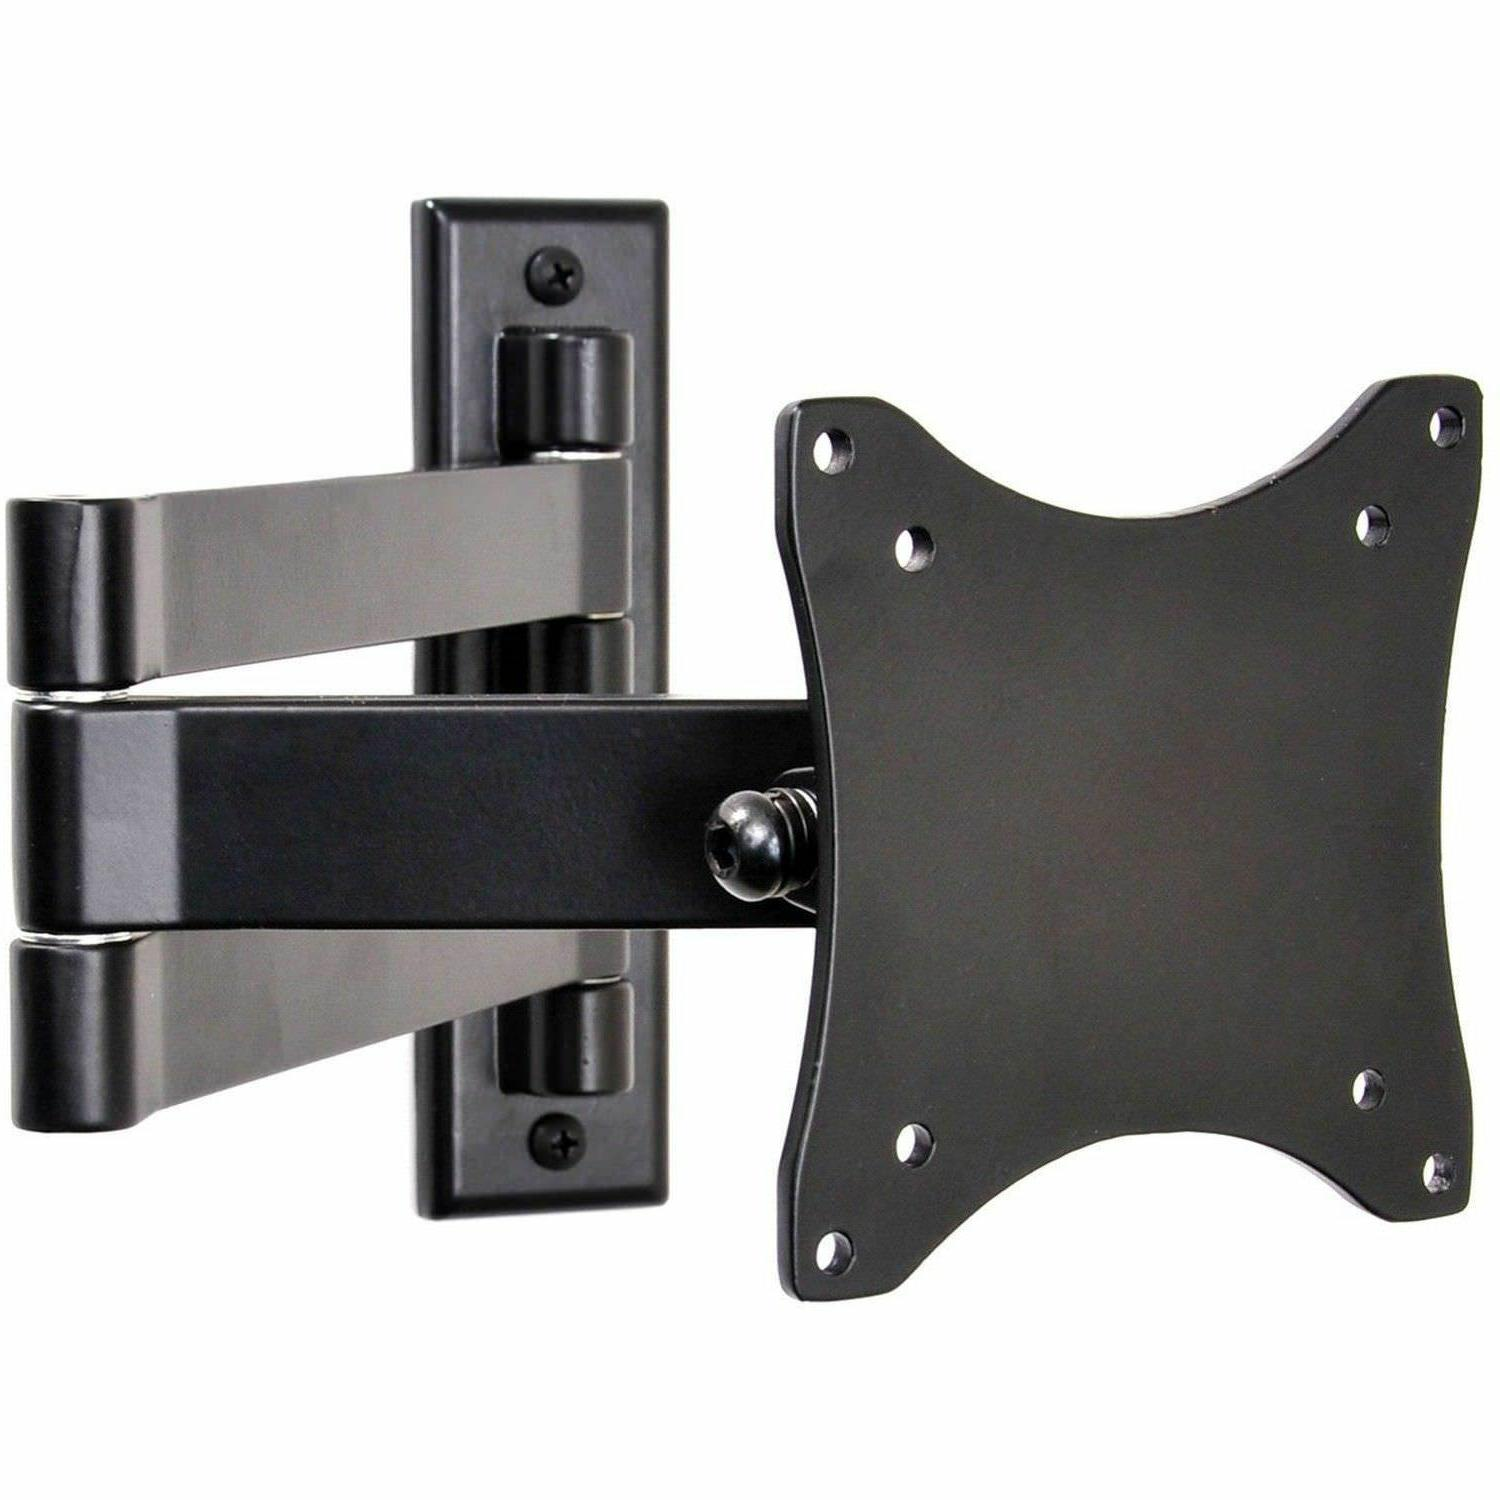 VideoSecu TV Wall Mount Articulating Arm Monitor Bracket for